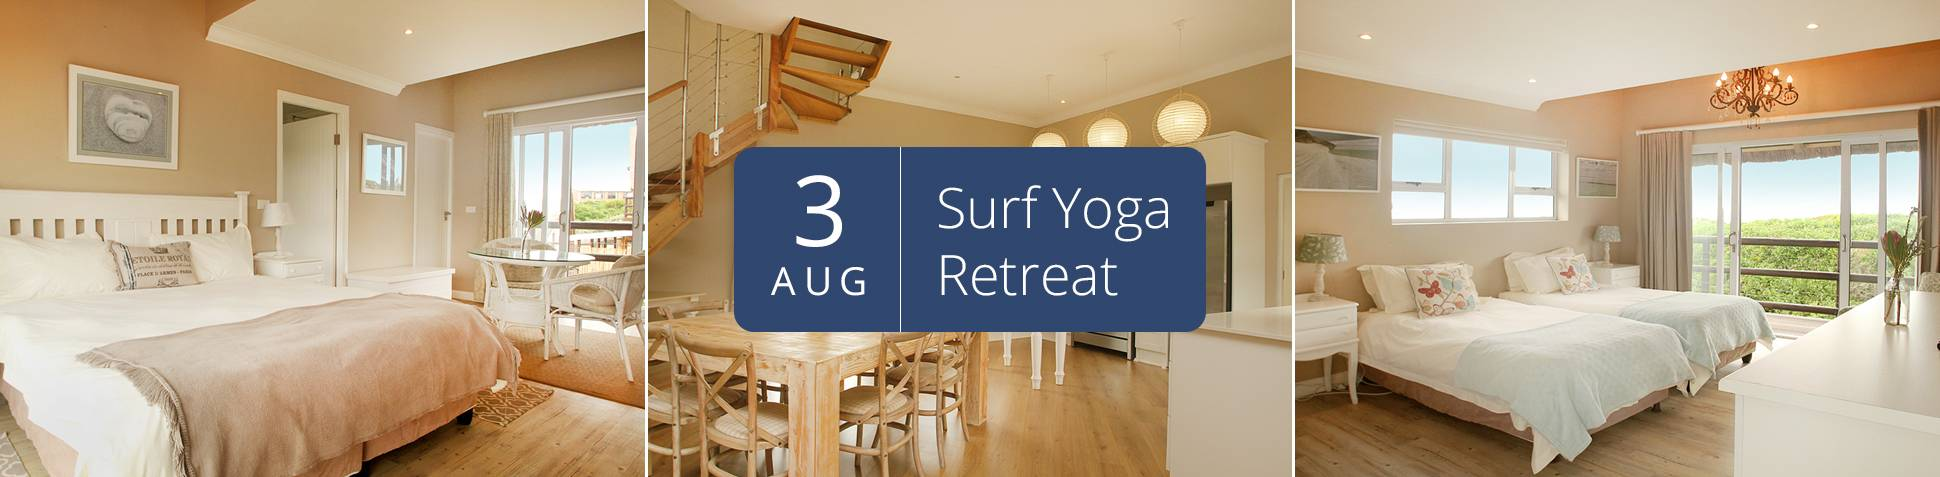 3-night-surf-yoga-stress-relief-retreat